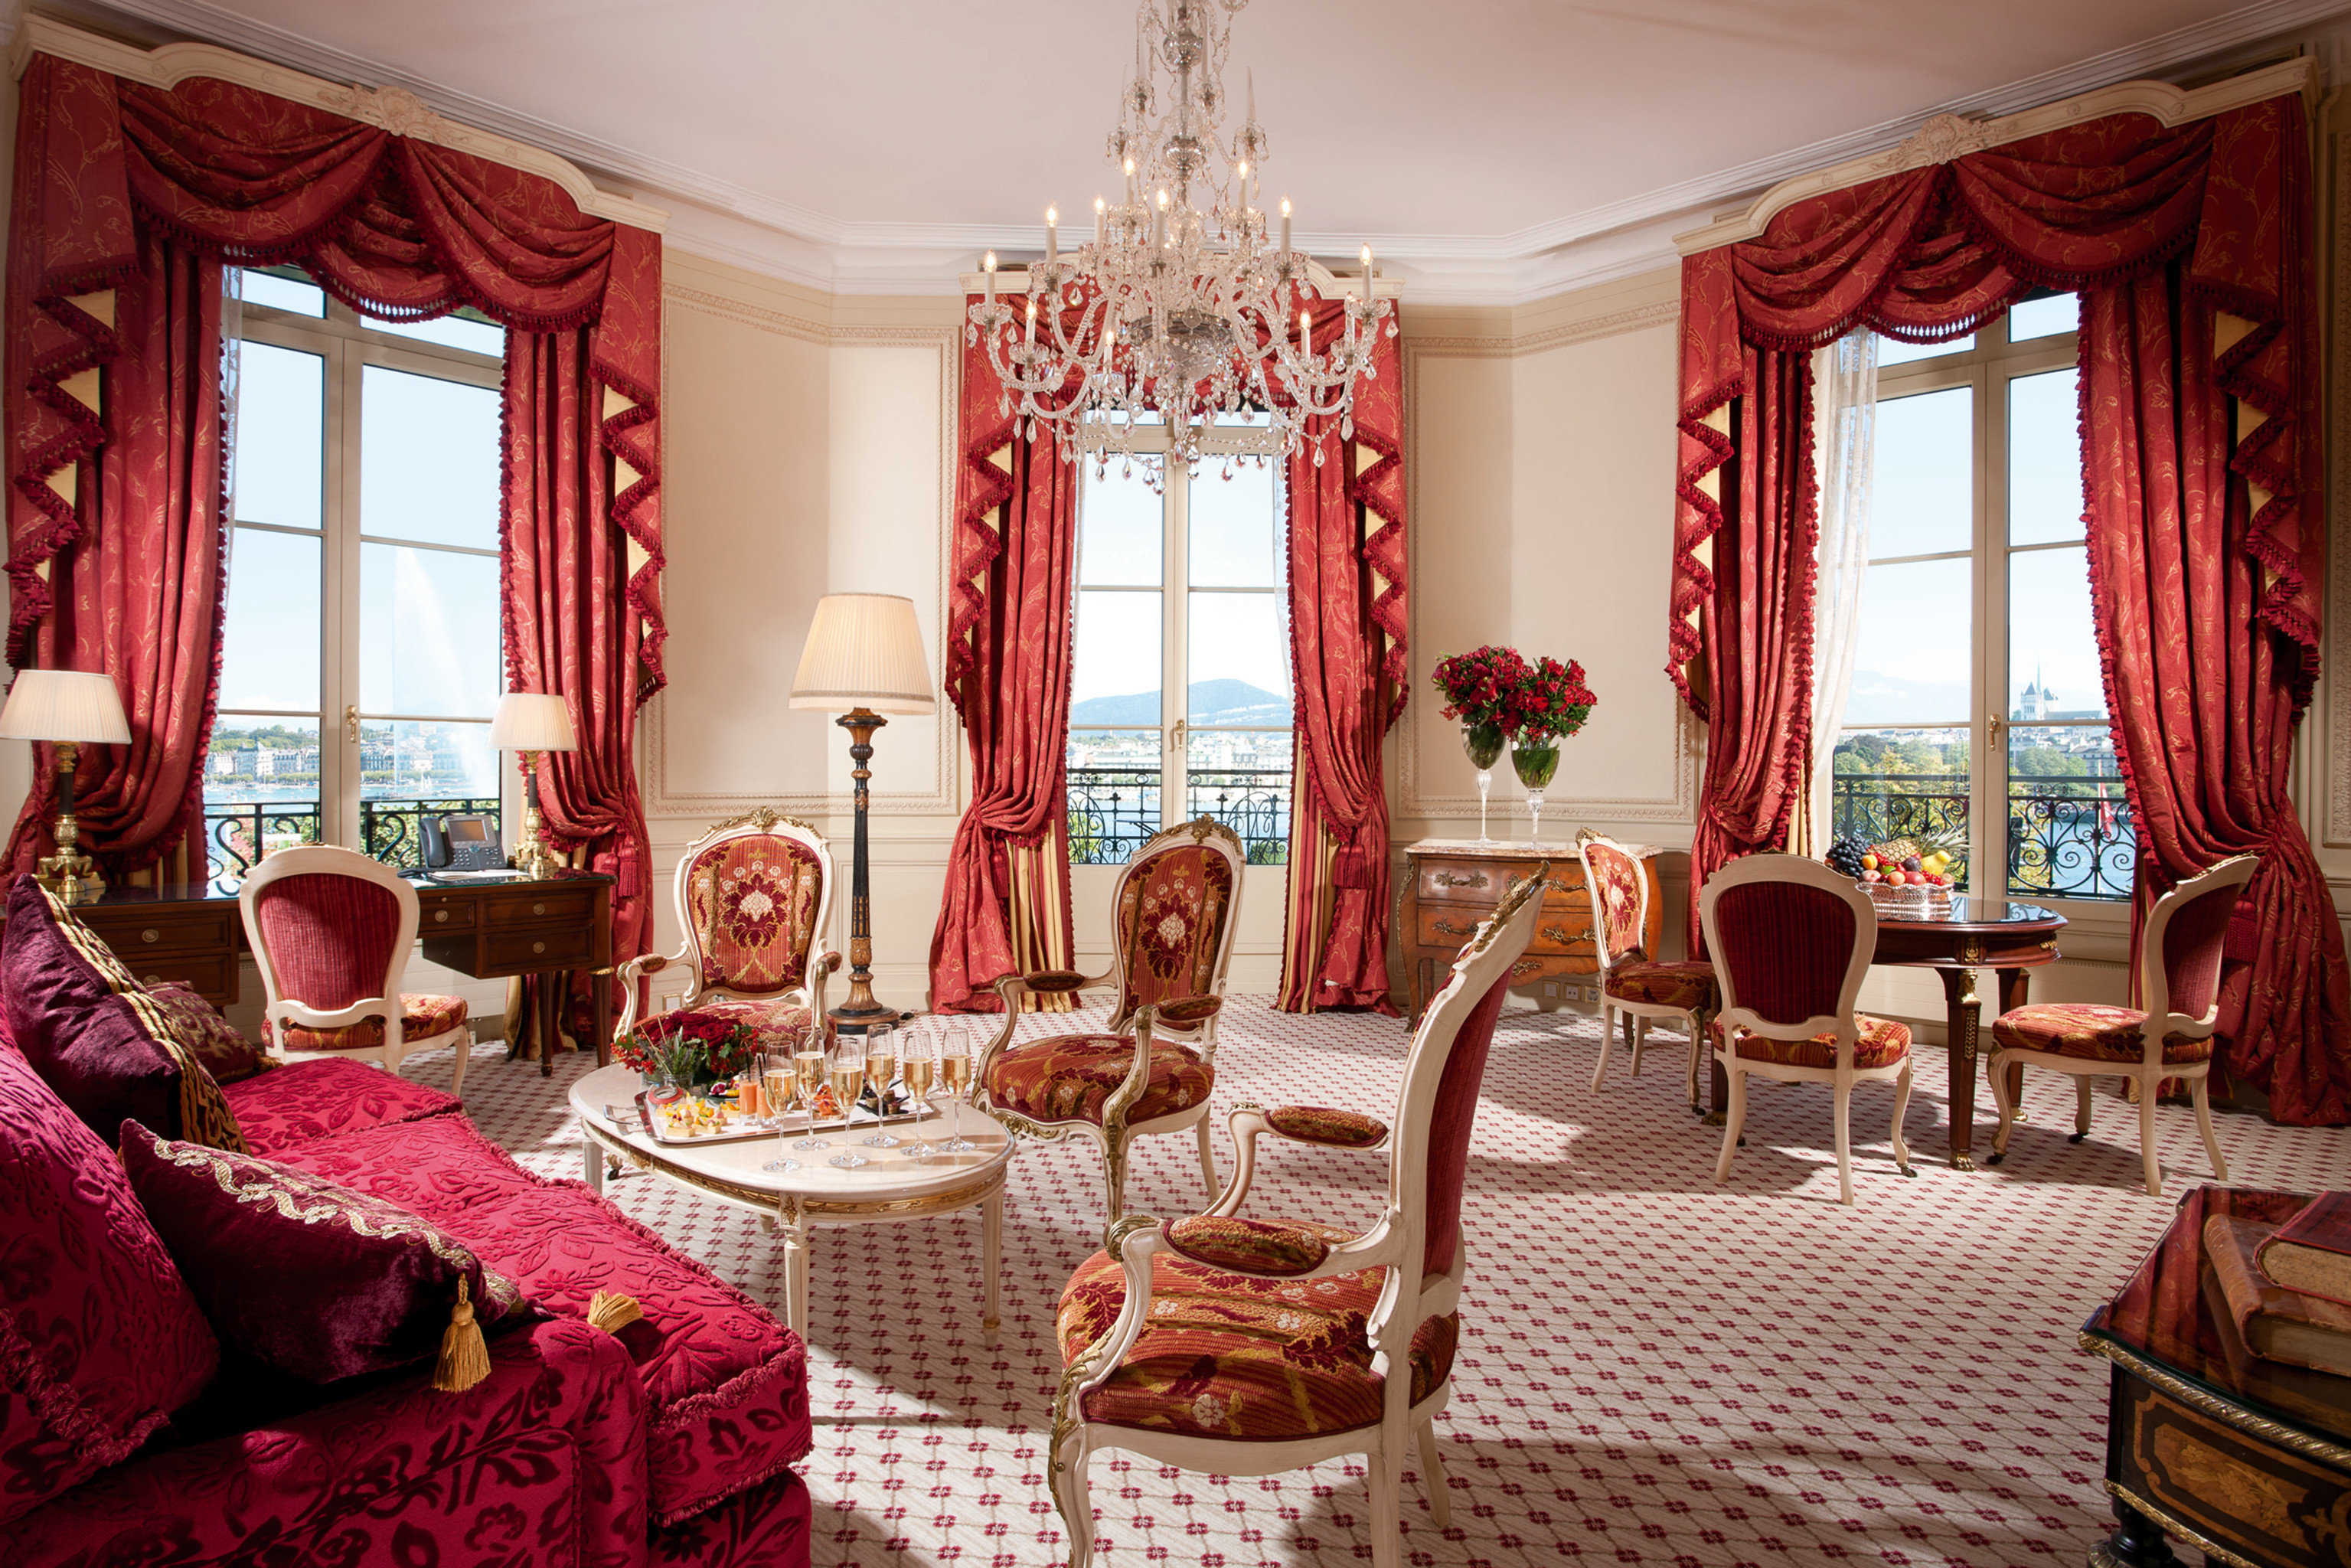 Balcony Classic Elegant Historic Lounge Luxury Scenic views Suite chair living room mansion palace